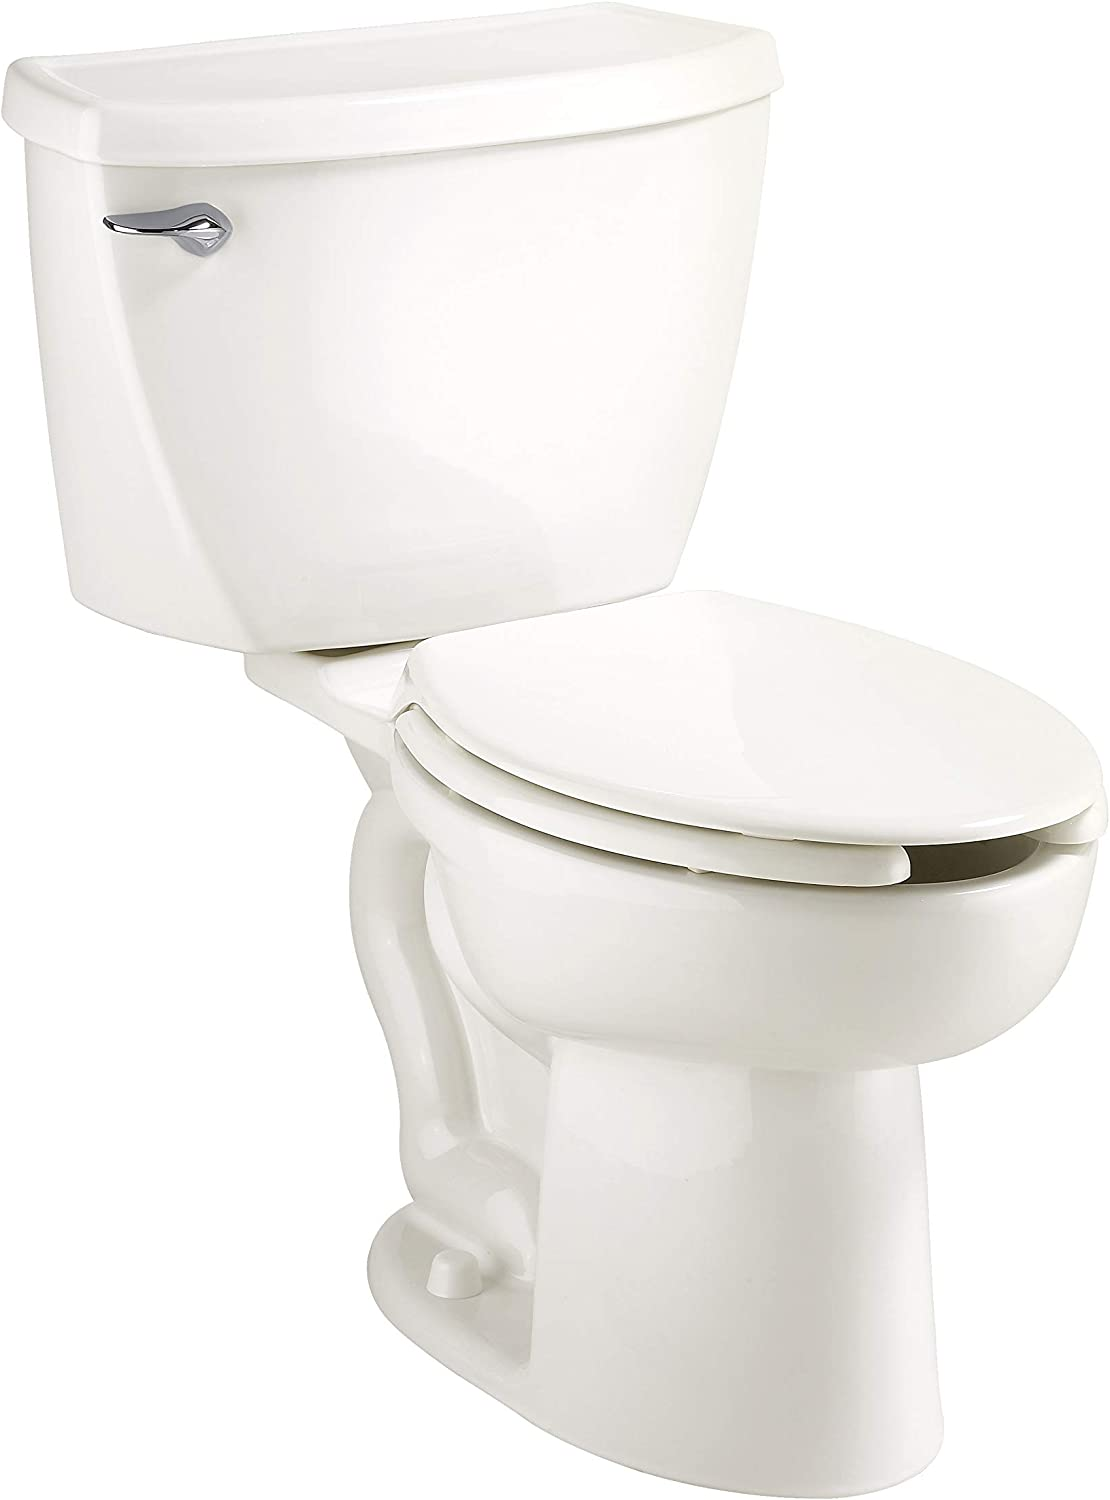 American Standard 2462.016.020 Cadet Elongated Pressure Assisted Two Piece Toilet, White , 30.25